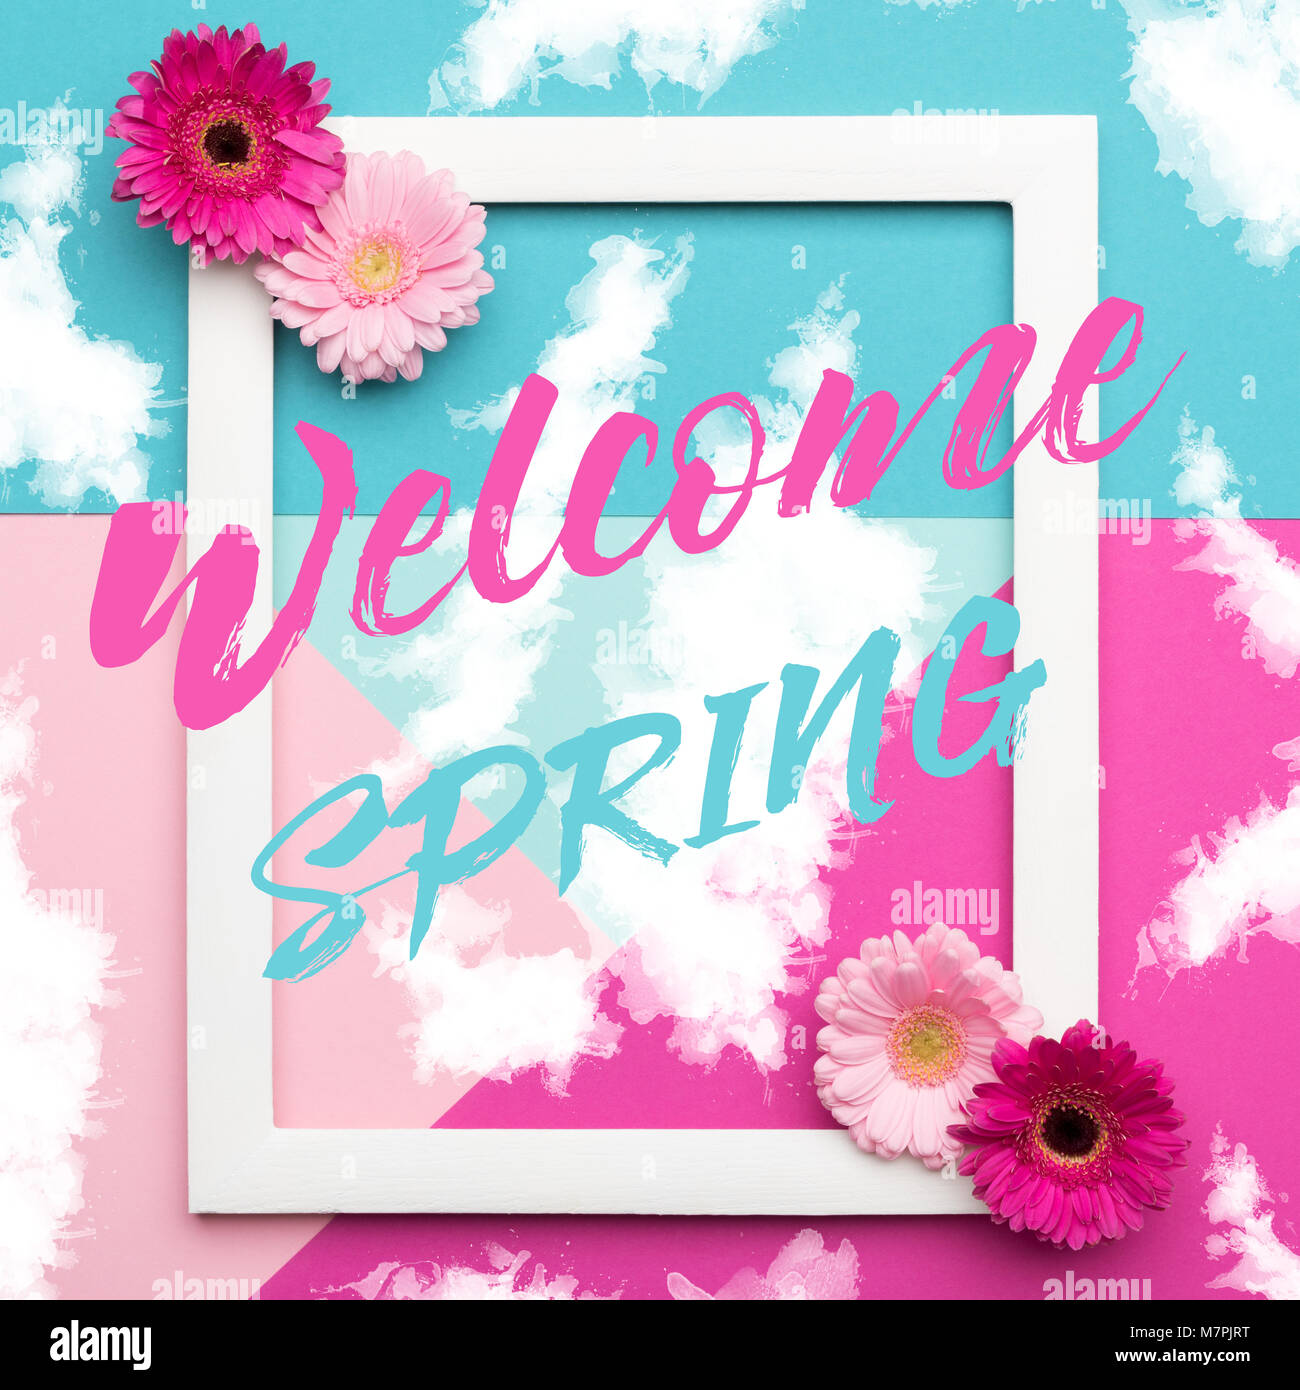 Welcome Card Stock Photos Welcome Card Stock Images Alamy